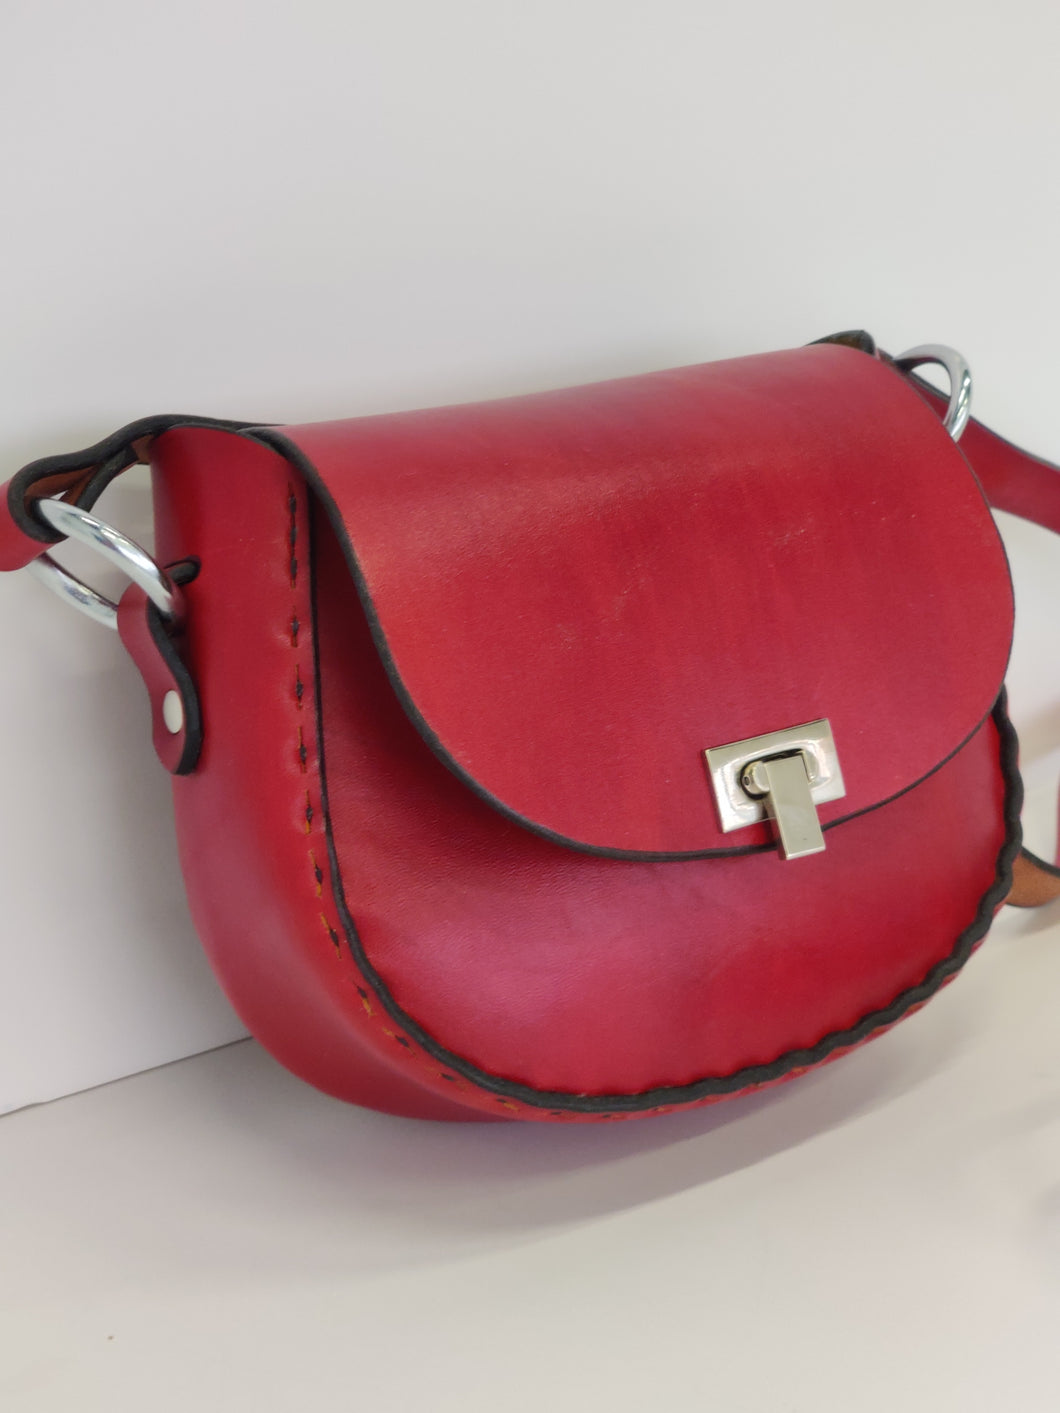 Handmade Latigo Leather Cross Body Purse Red/ Small Shoulder Bag Red